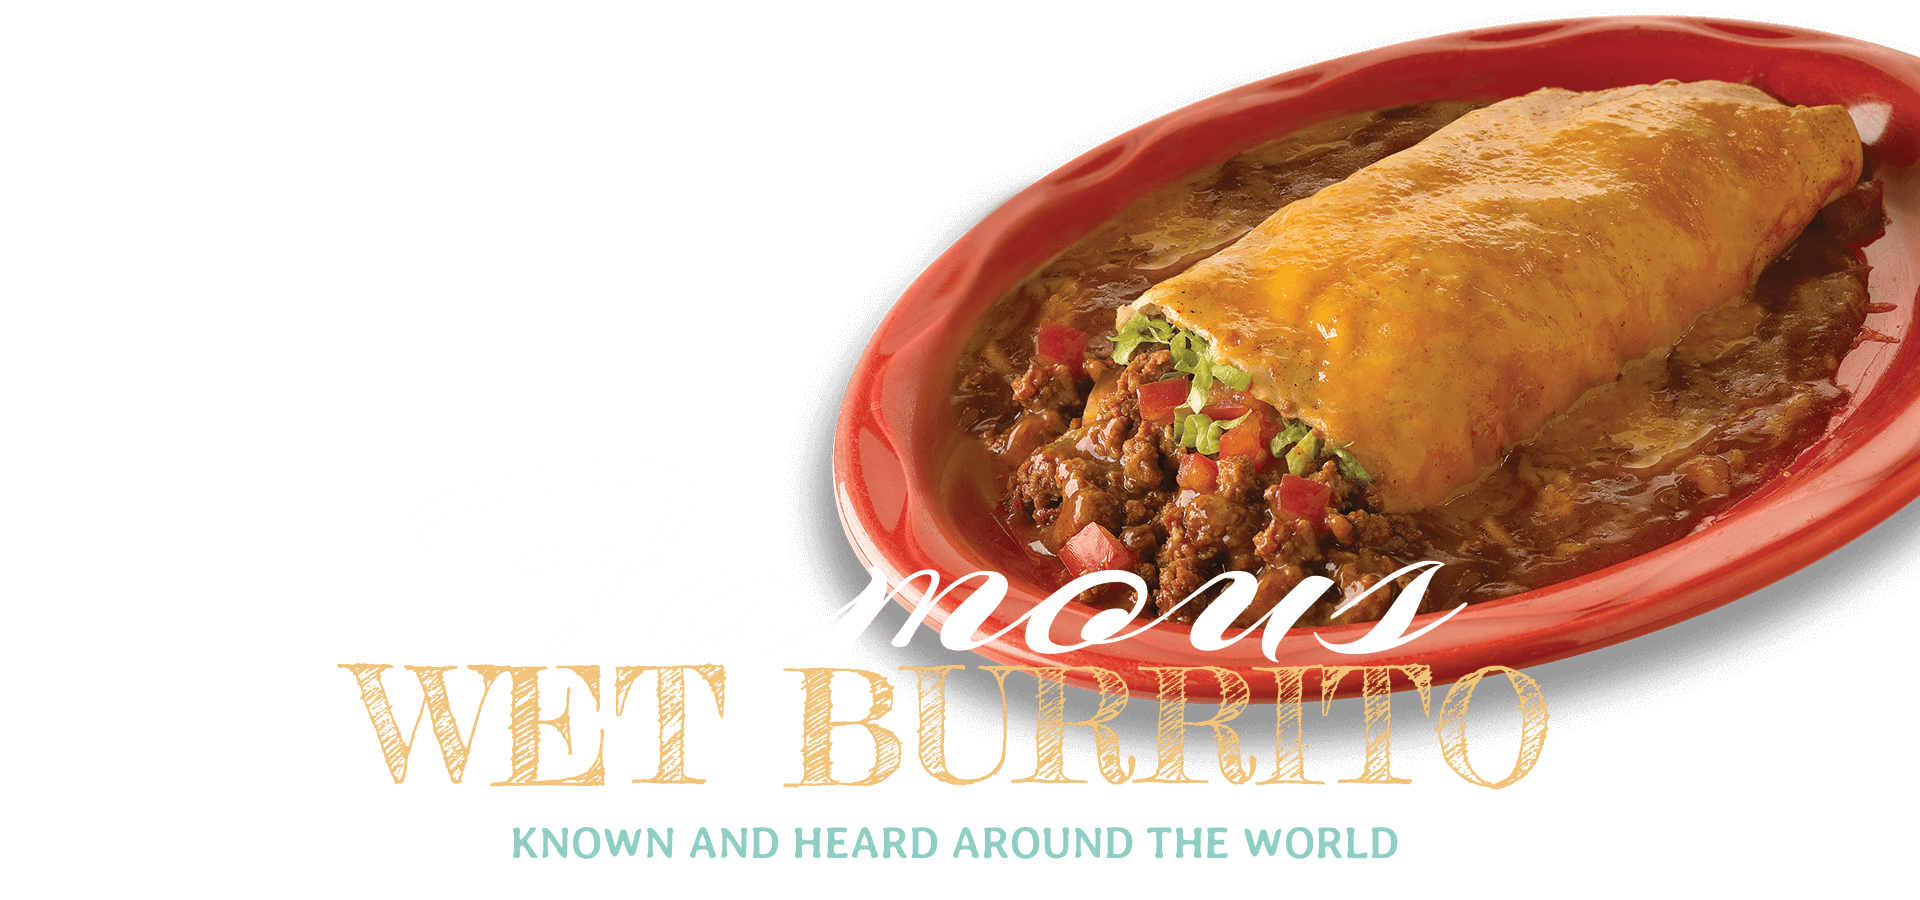 Famous Wet Burrito - Known and Heard Around the World